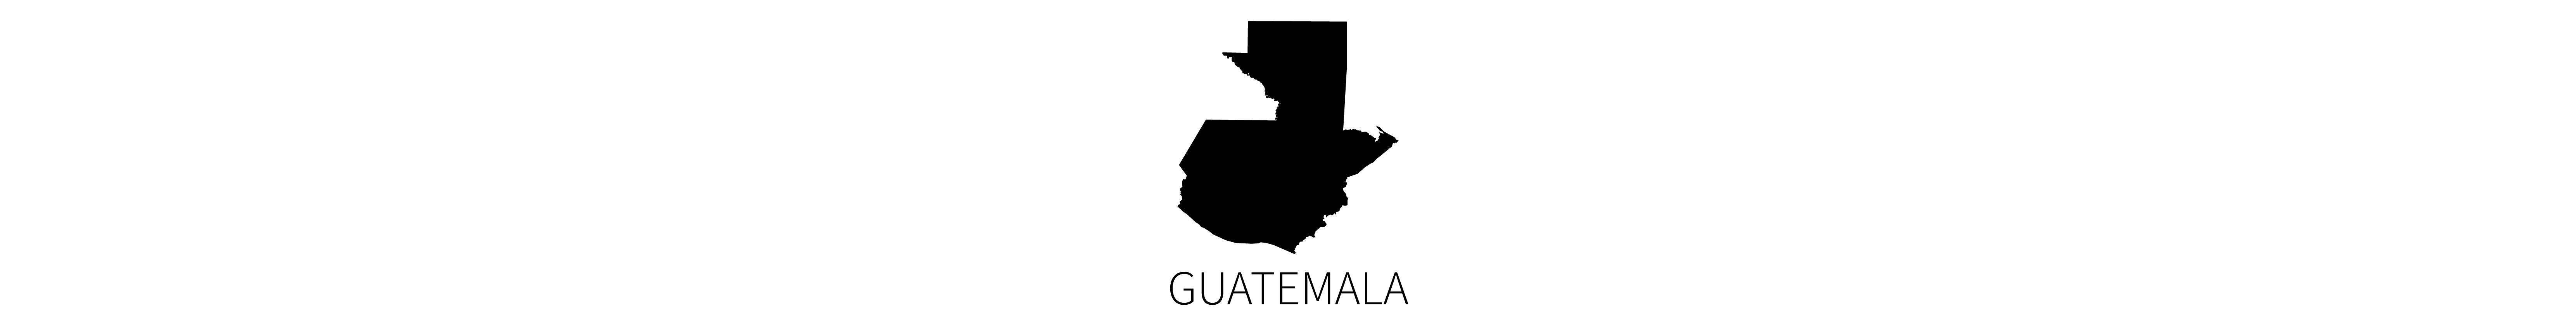 This image contains the black map silhouette of the country of Guatemala with identifying all-caps text below.